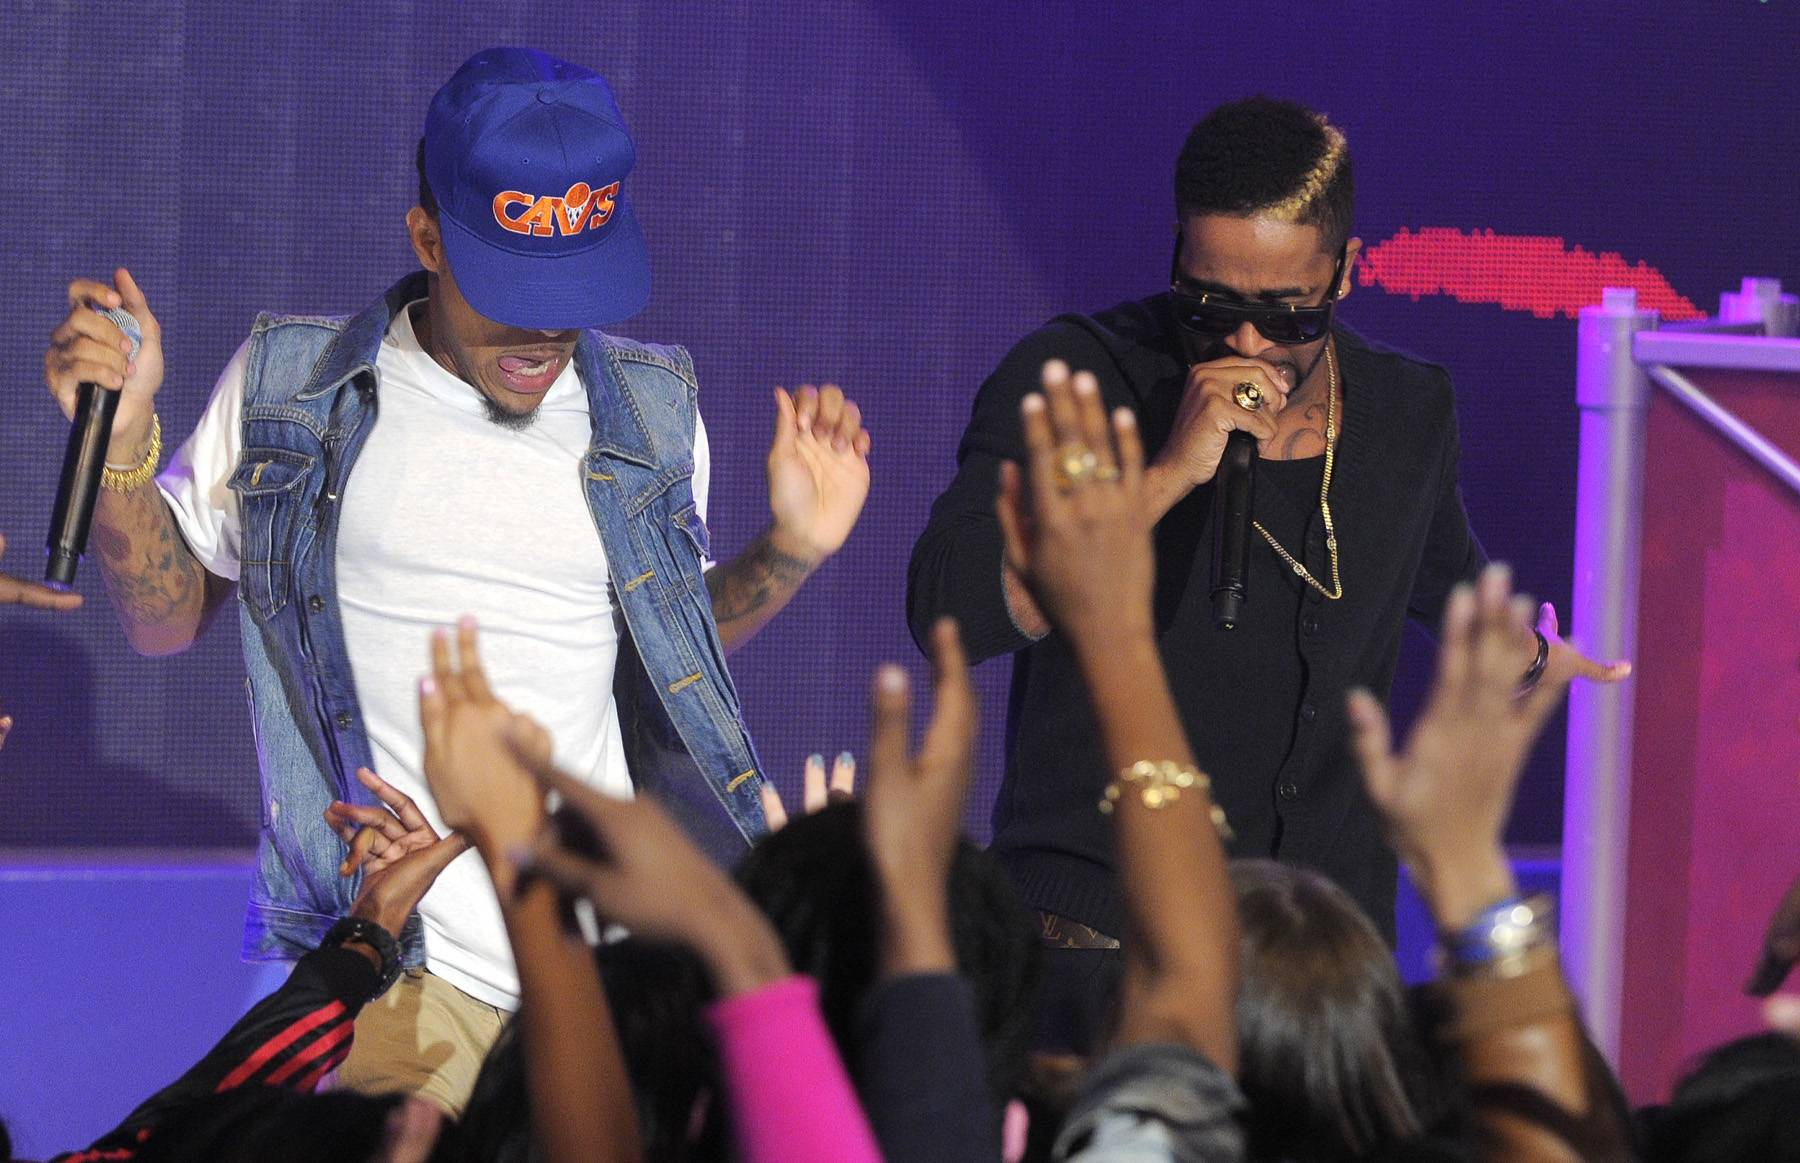 Touch Me - Bow Wow on set at BET's 106 & Park. (Photo: John Ricard / BET)